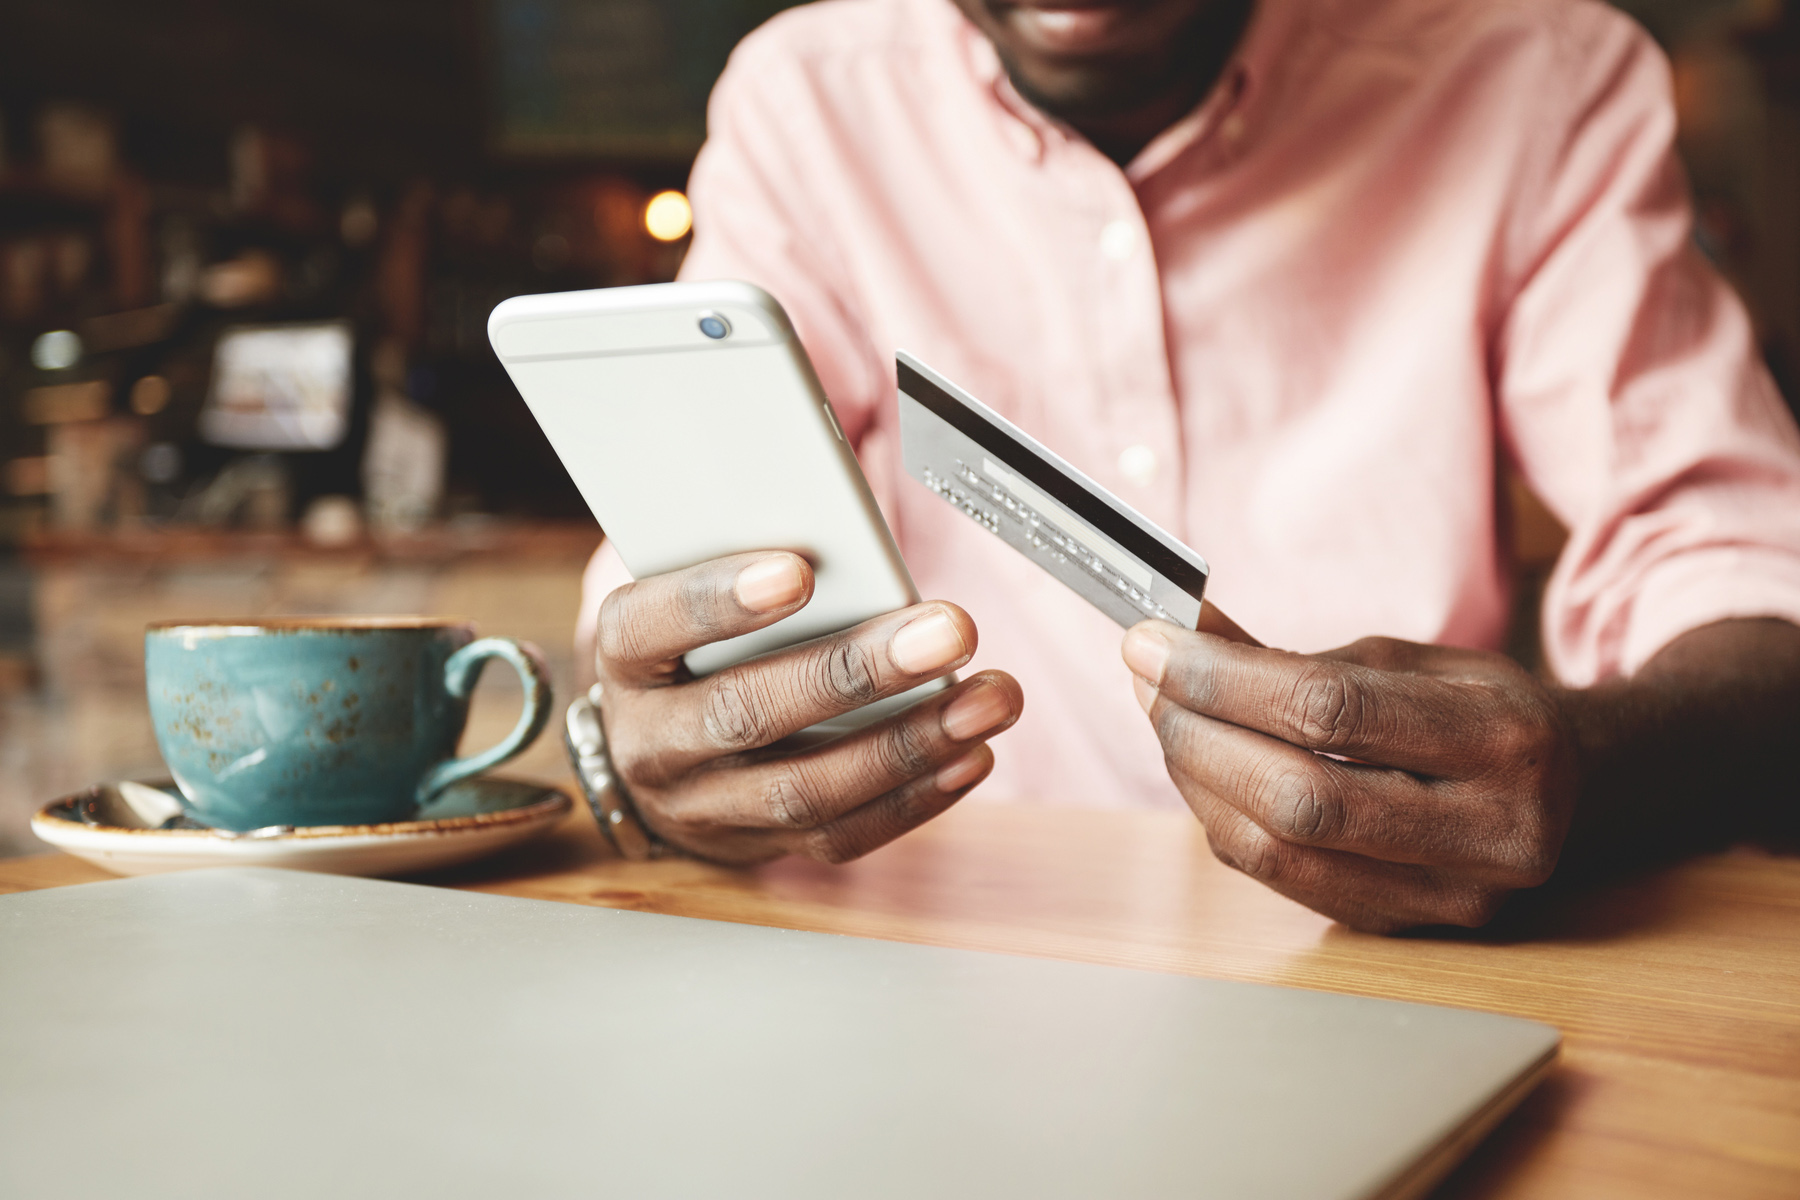 Mobile bank accounts in Luxembourg